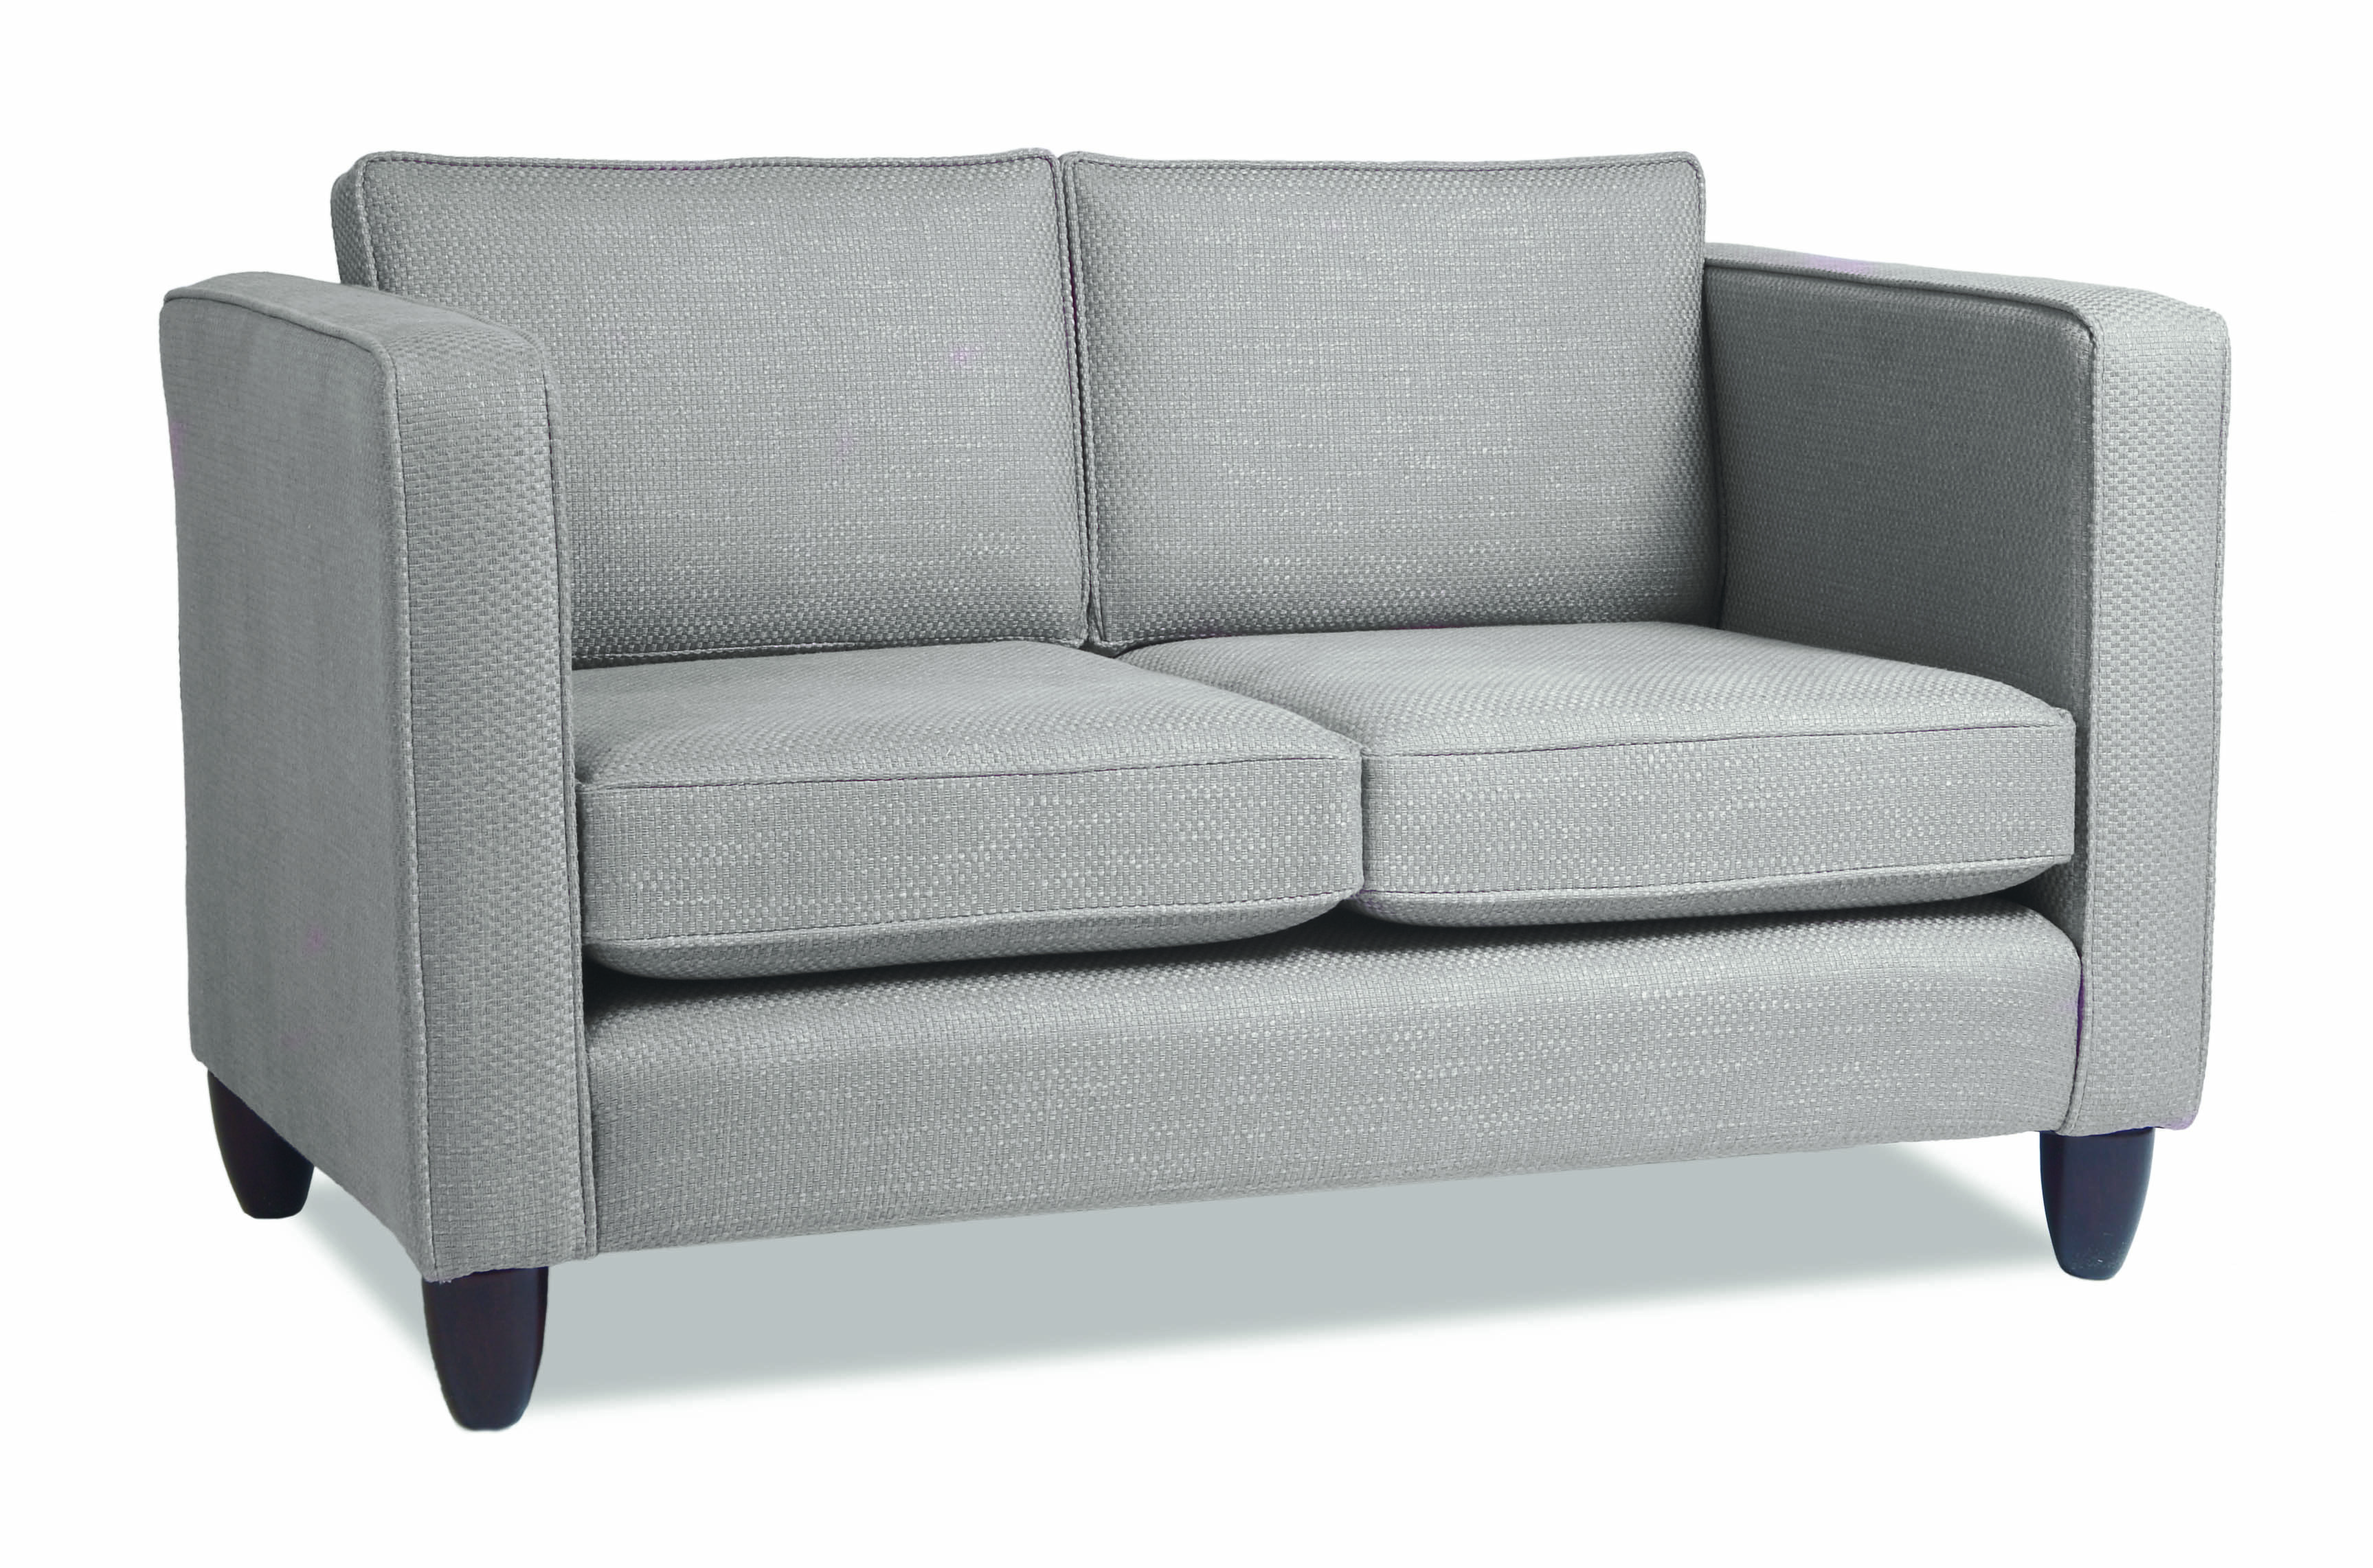 sofa sofas wales standard l shaped dimensions abbie | jameson seating